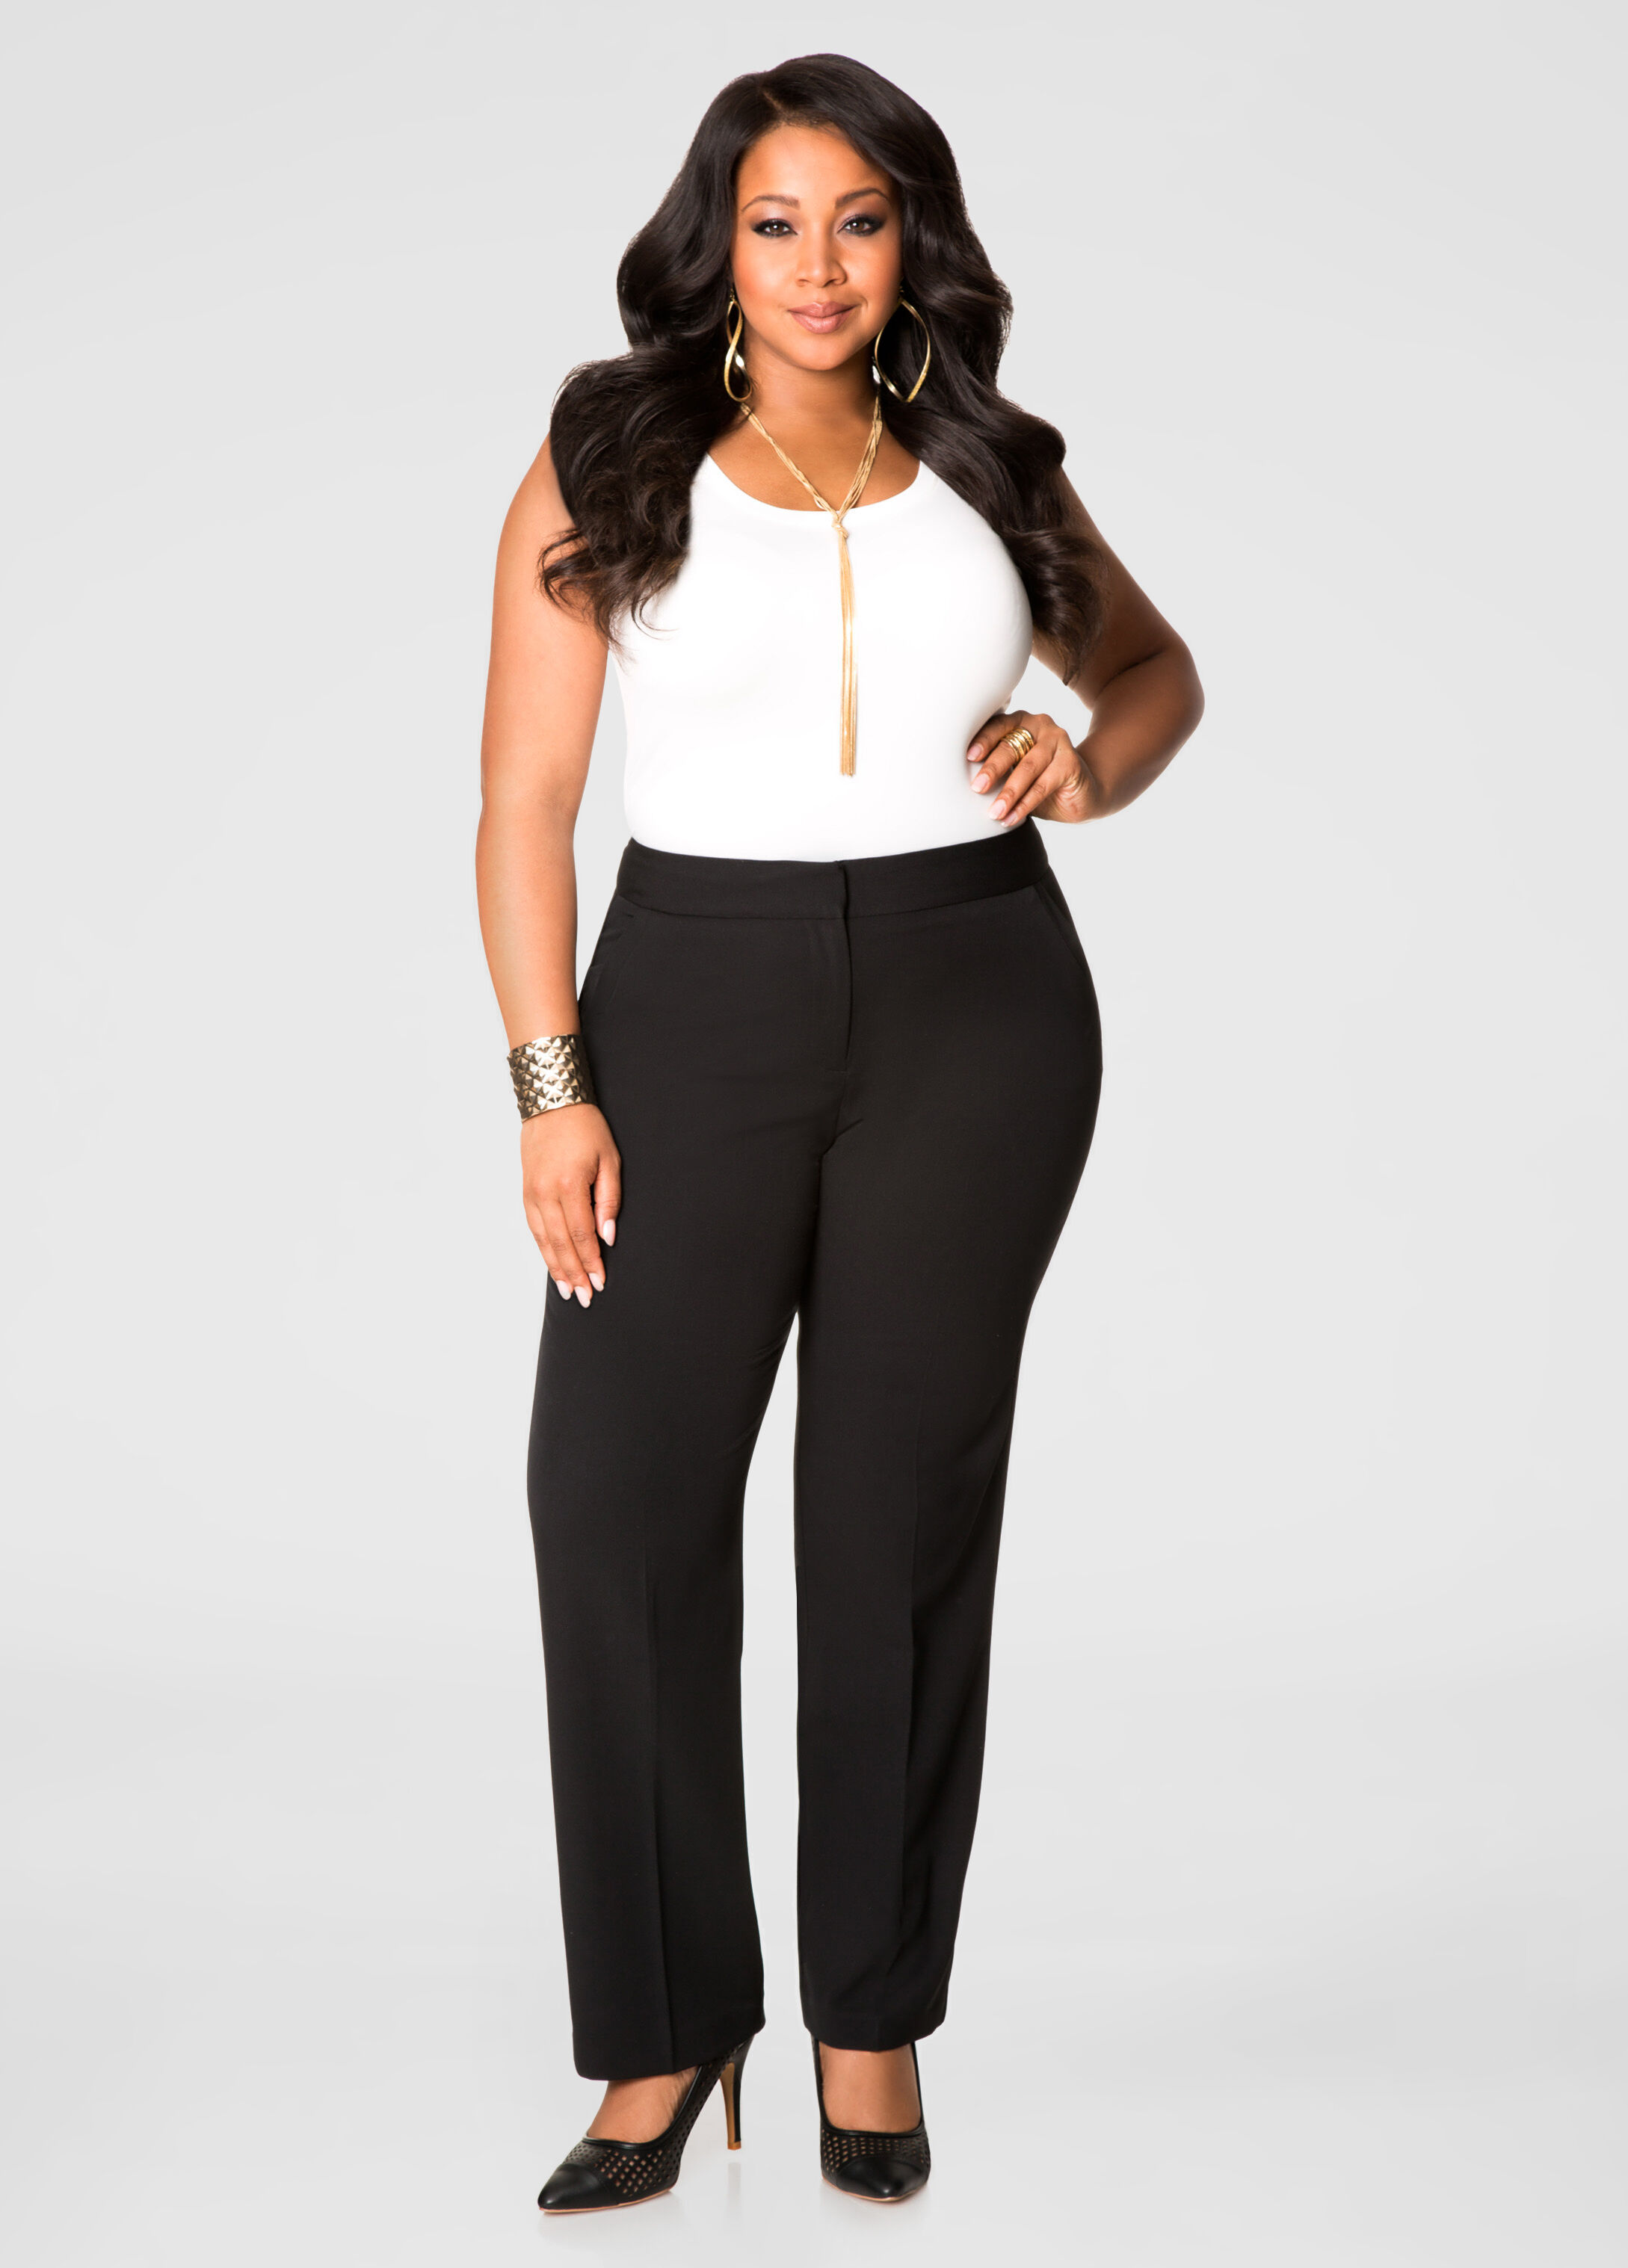 Buy Size 16 Tall Womens Jeans - Ashley Stewart